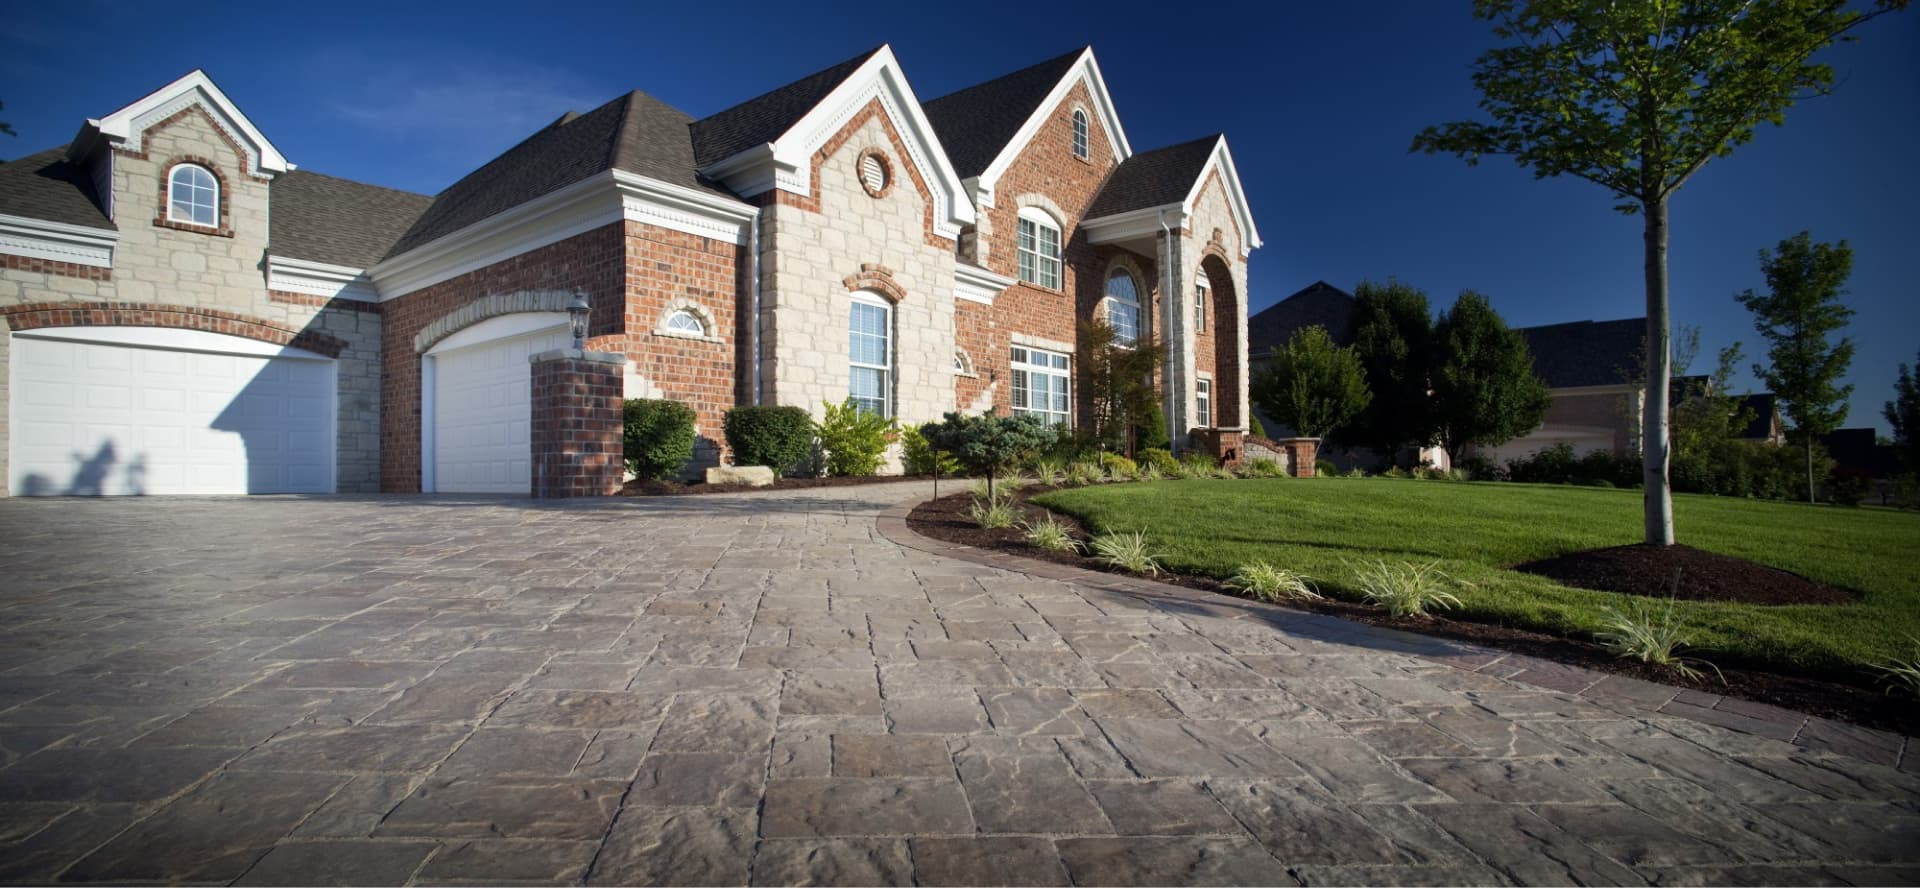 A beautifully landscaped front entrance